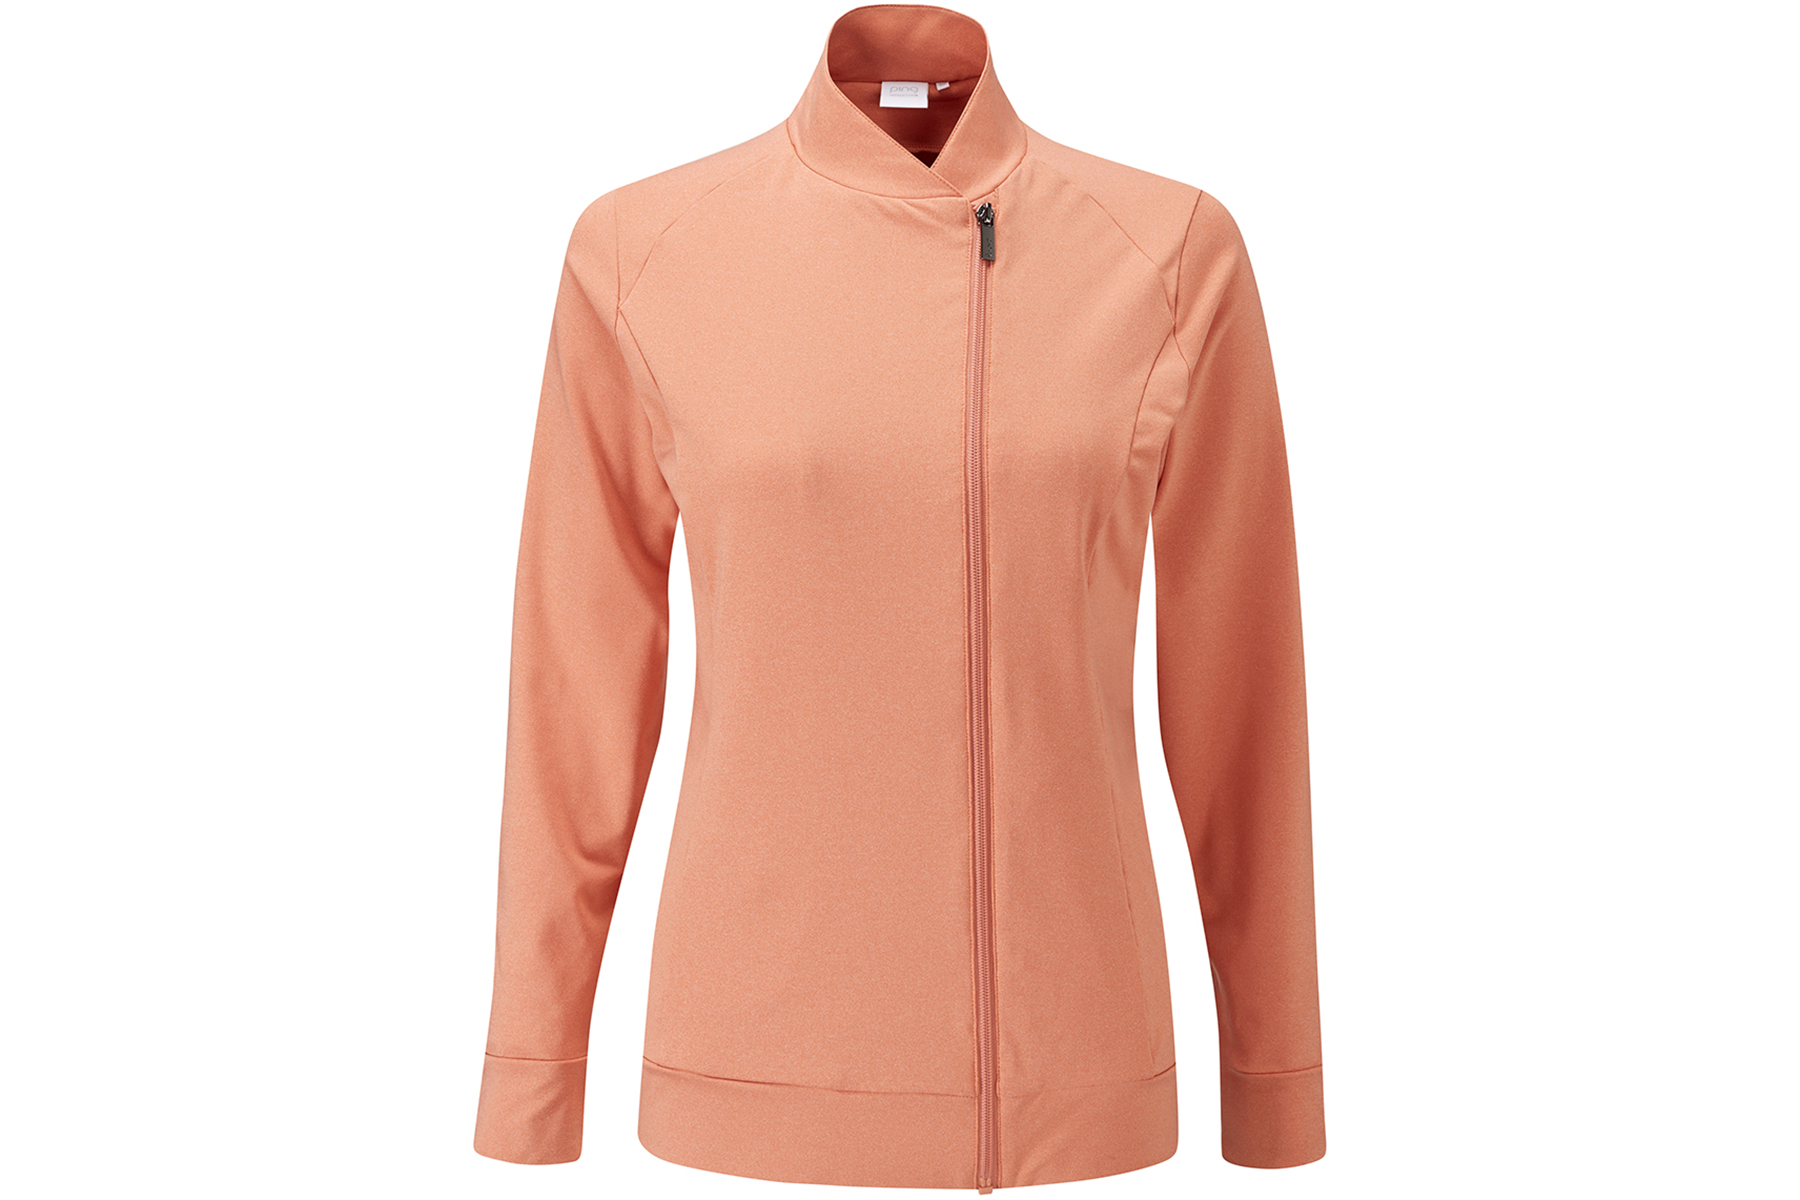 Best deals on clothing online